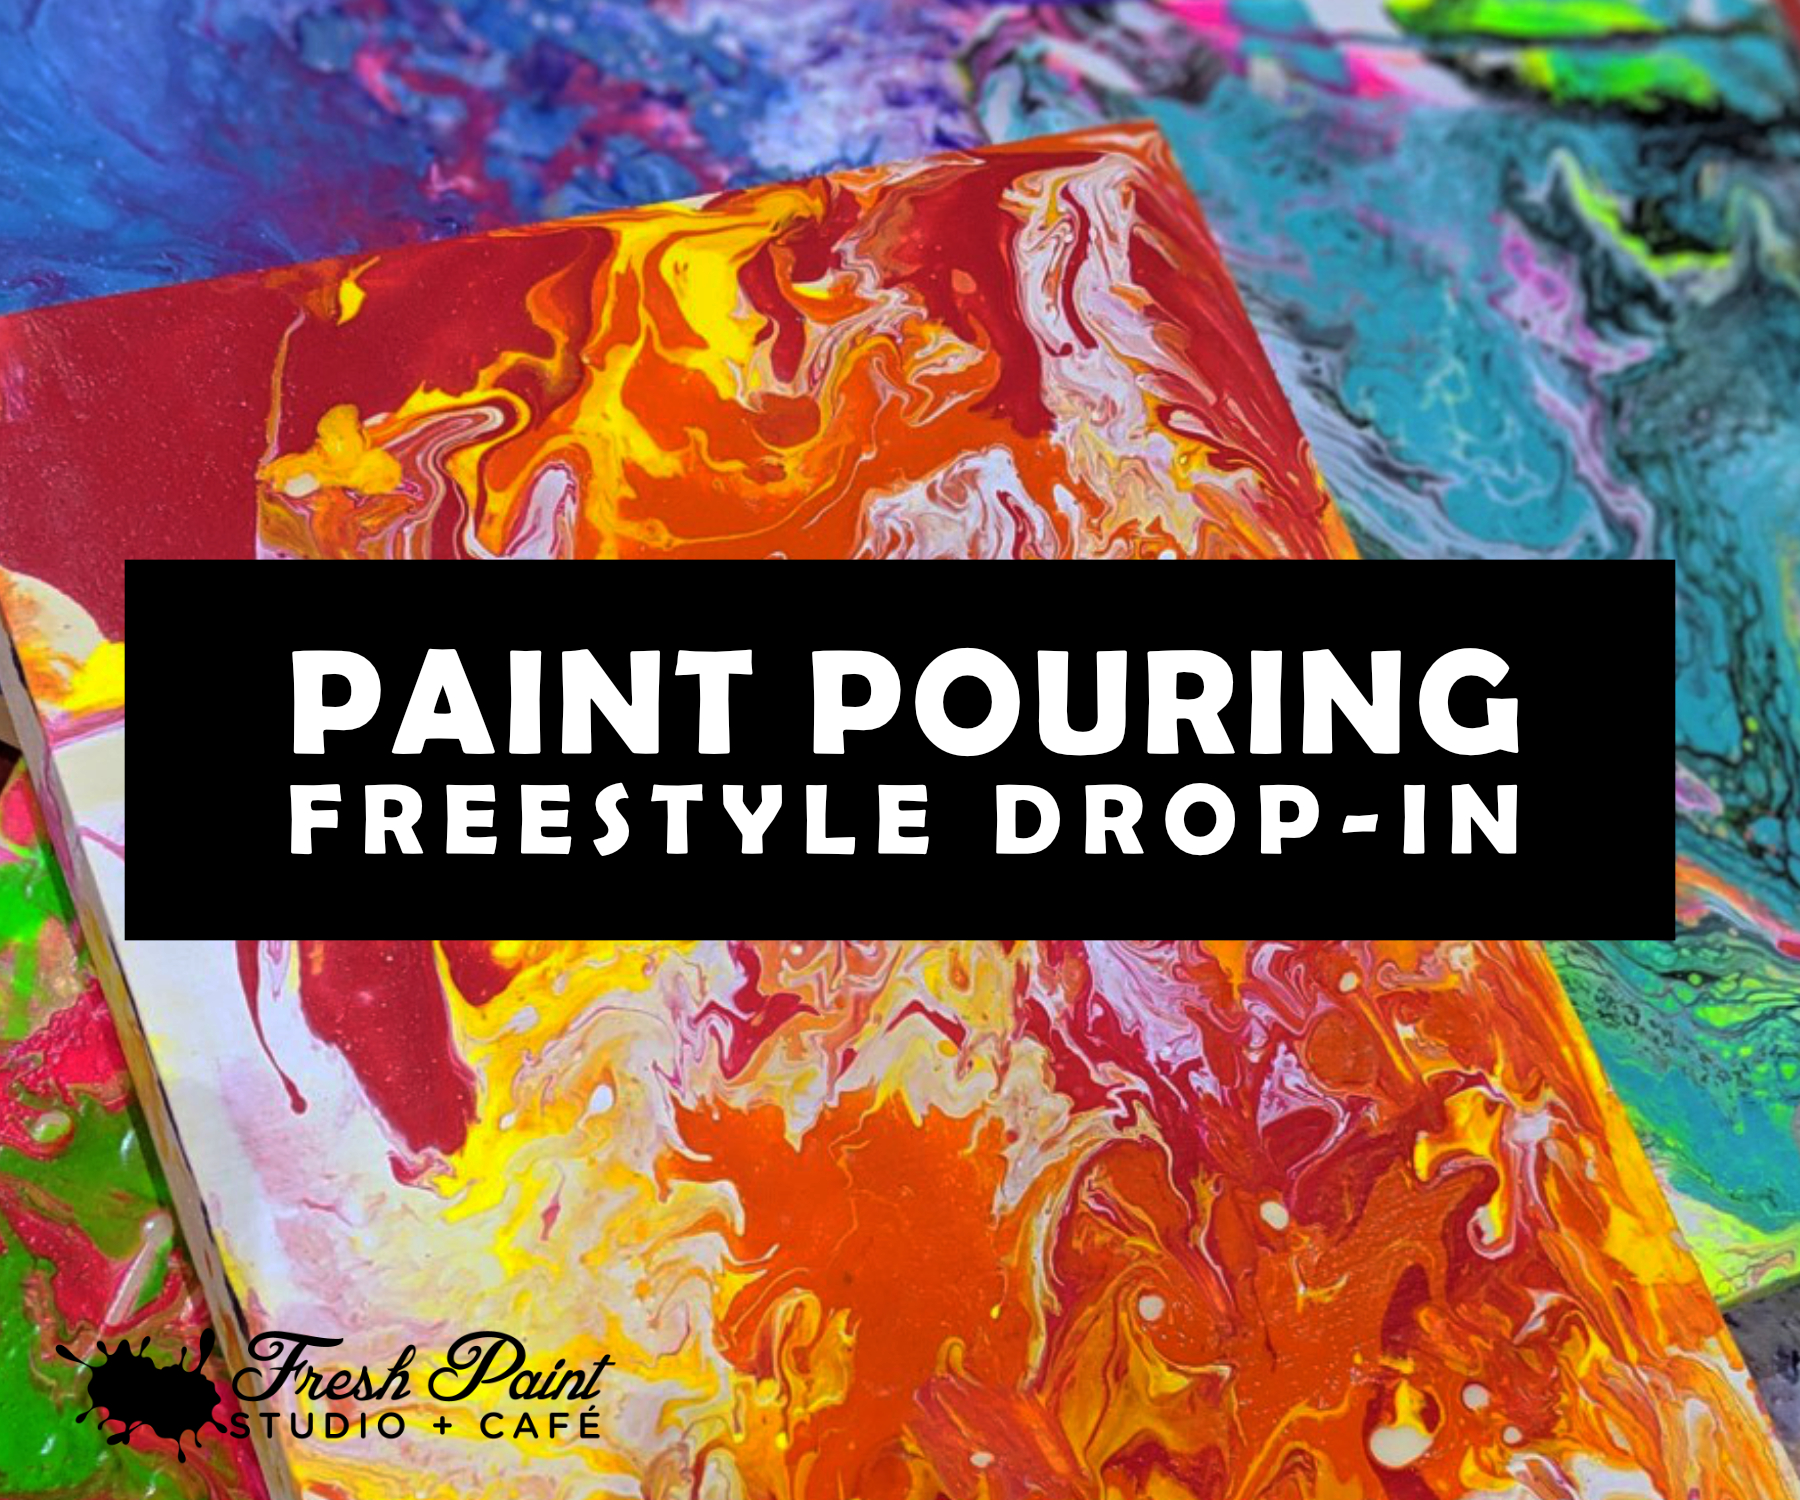 Paint Pouring Freestyle Drop in